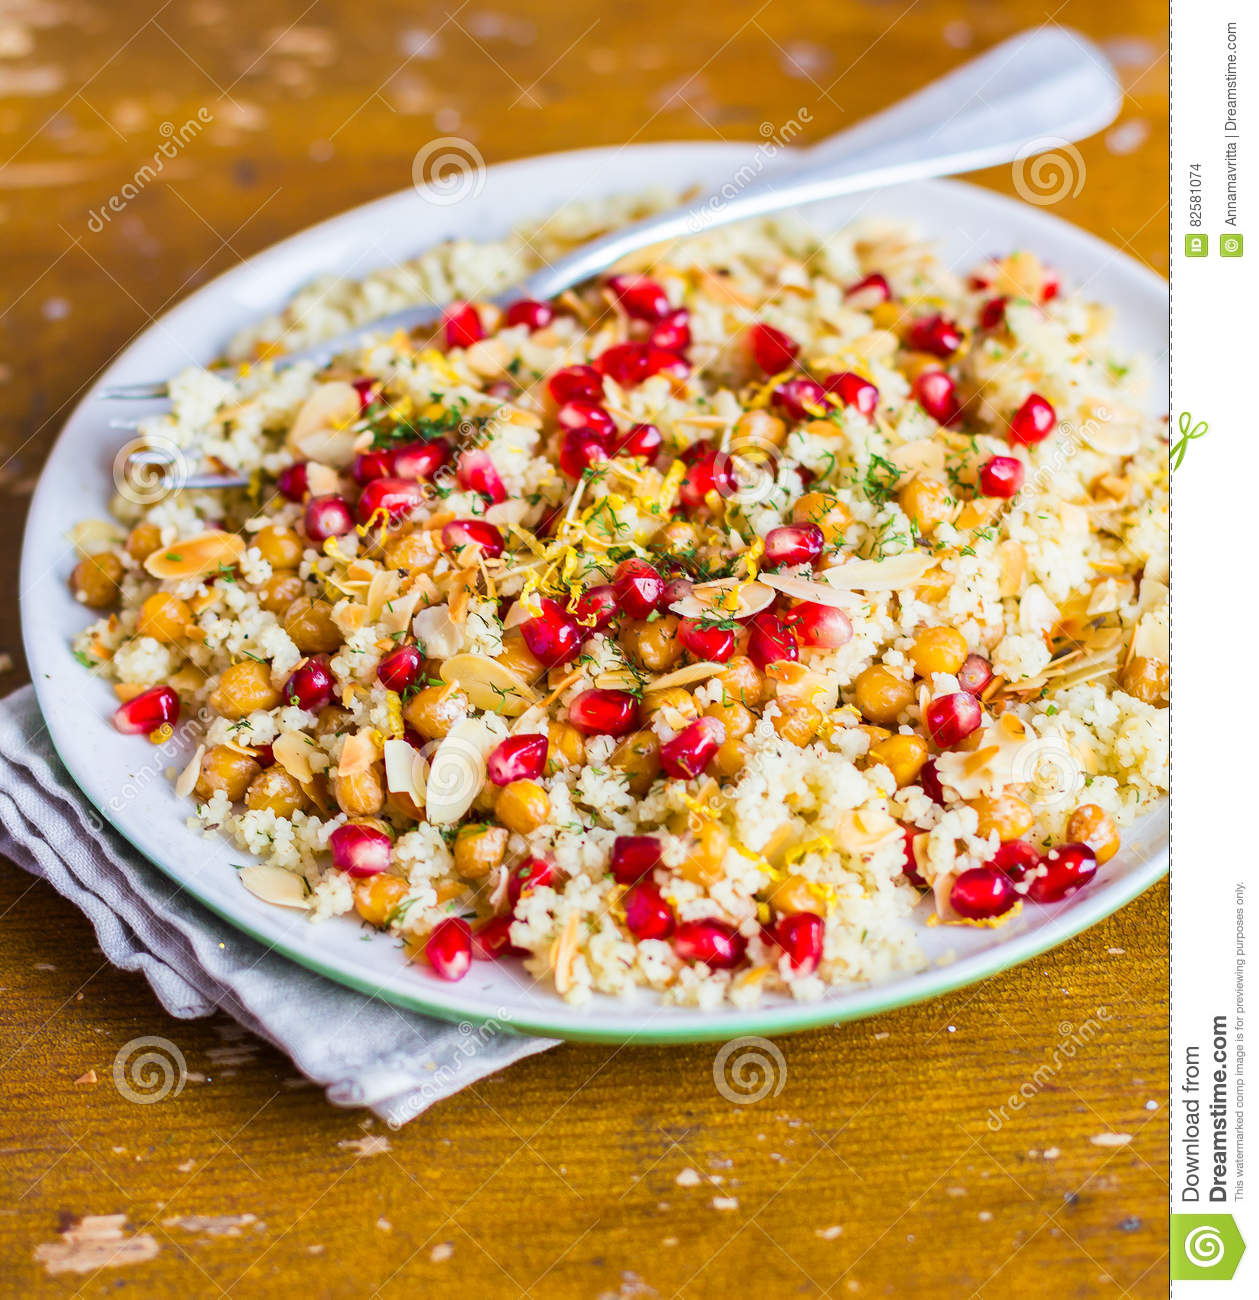 Warm Salad With Roasted Chickpea Couscous Pomegranate